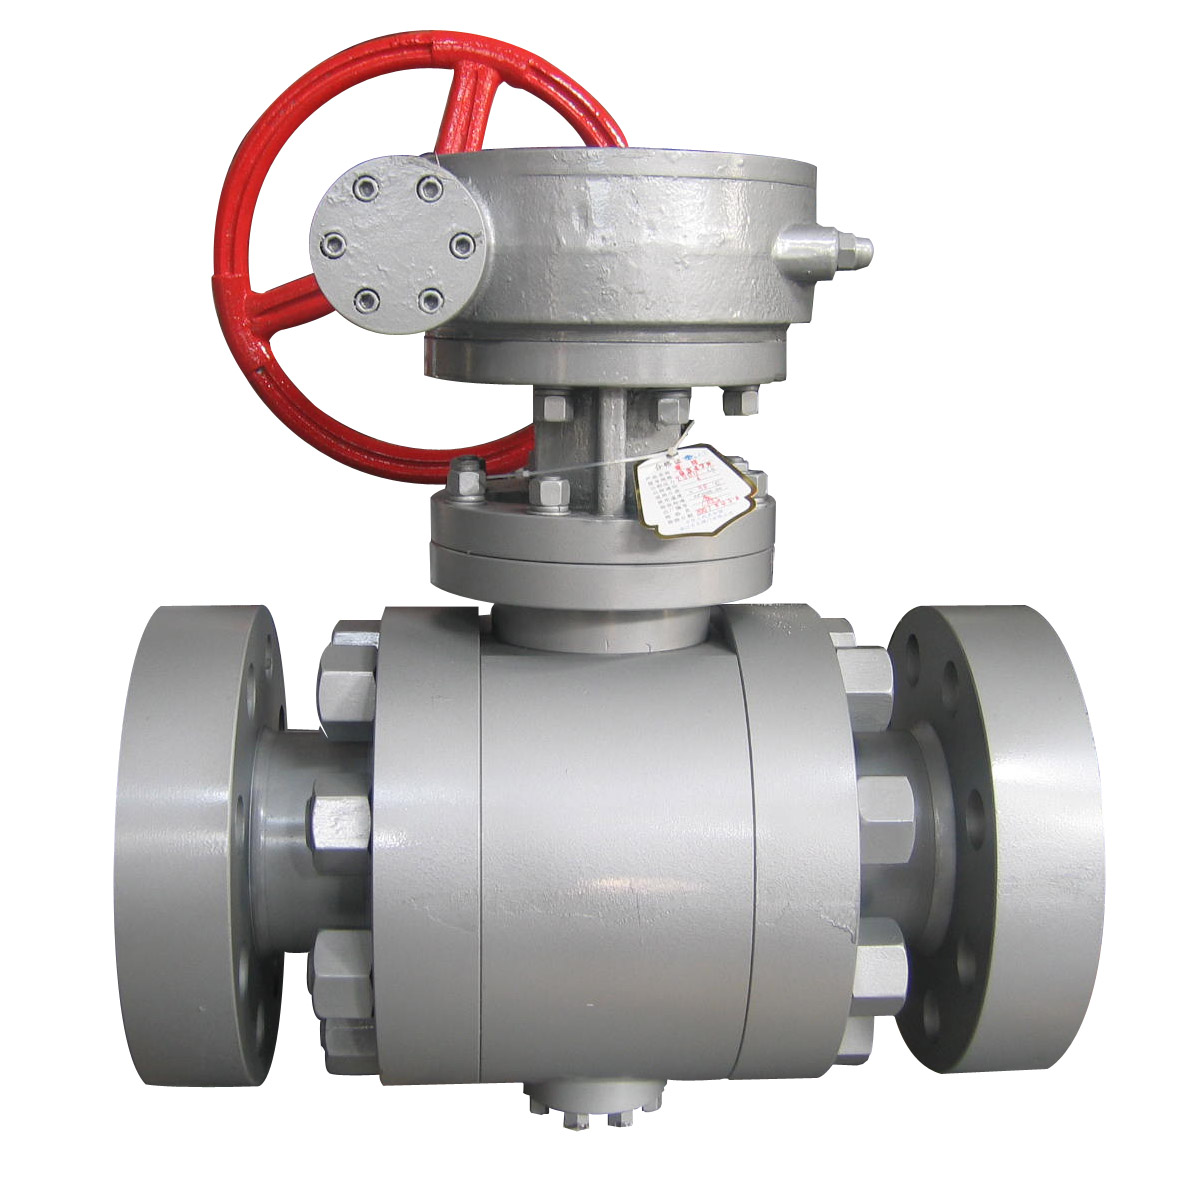 API 6D Forged Steel Trunnion Ball Valve, Class 1500